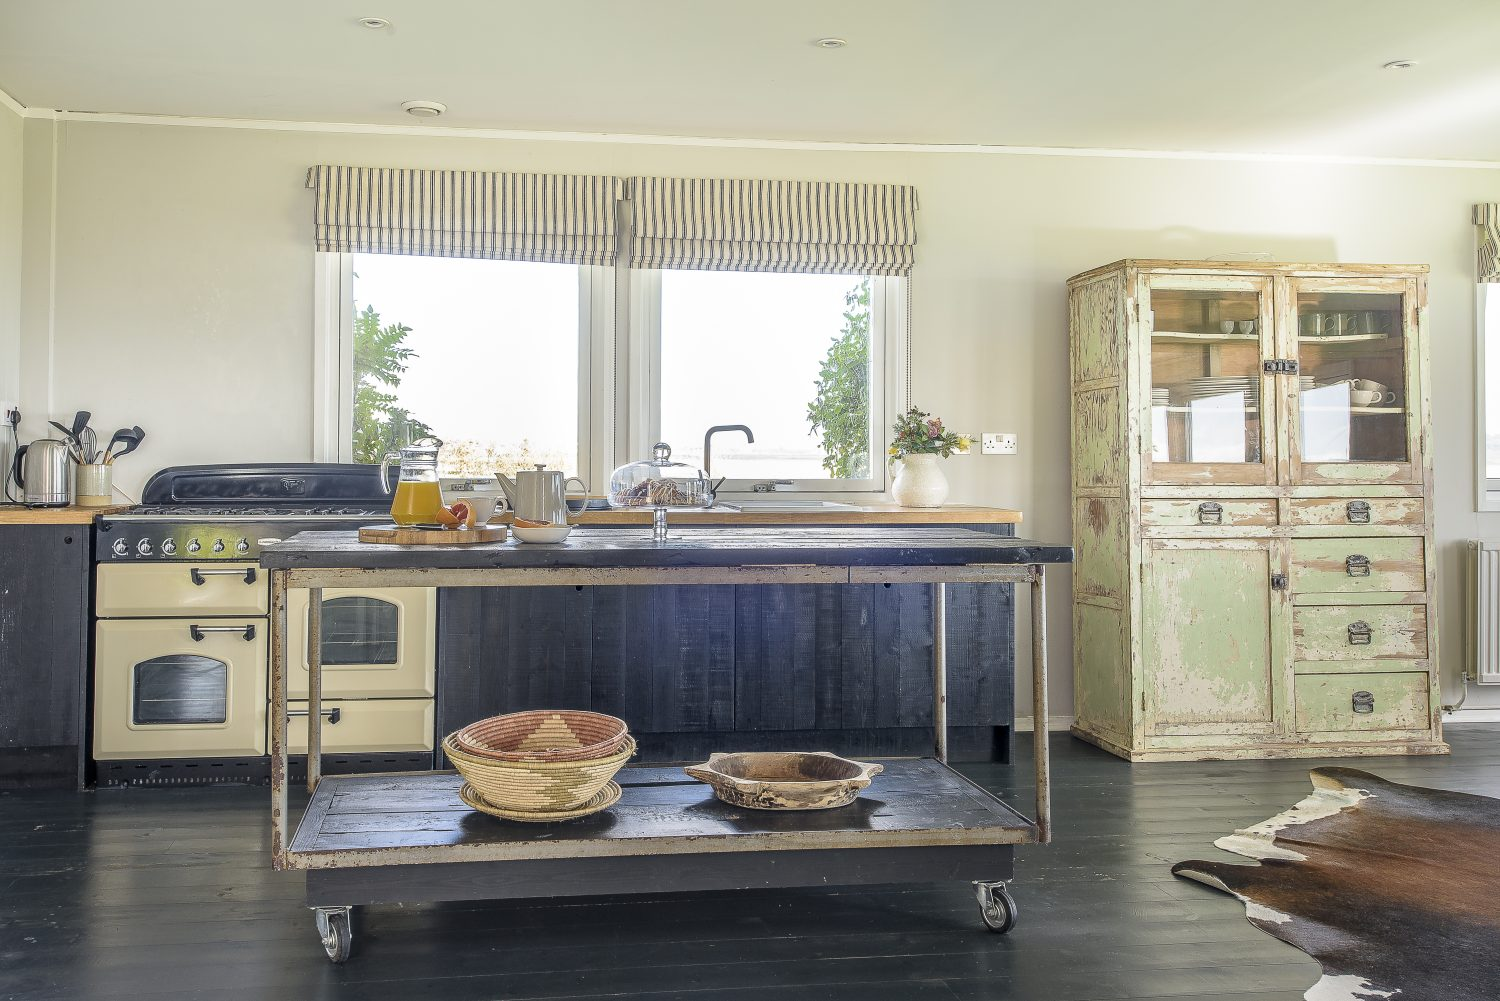 Francesca sourced the kitchen's industrial-style wheeled trolley from McCully & Crane in Rye